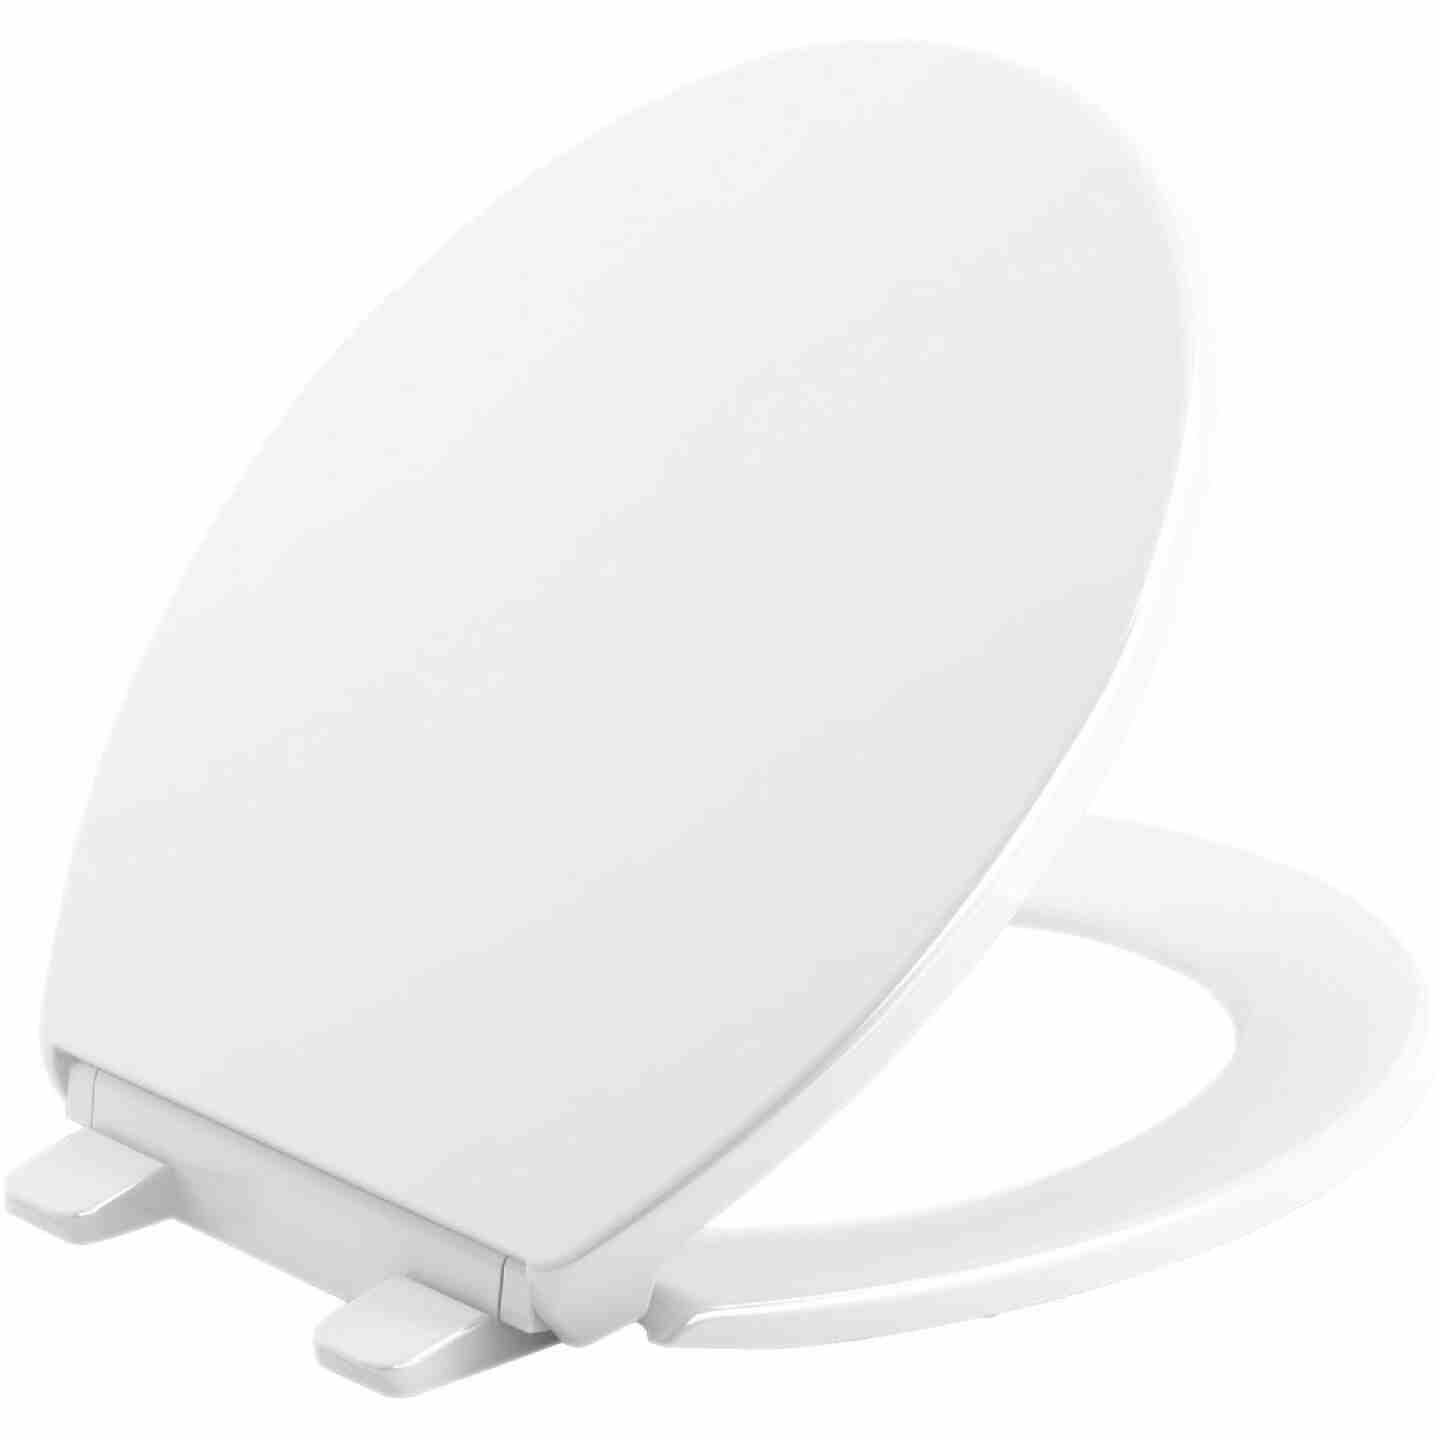 Kohler Brevia Quiet-Close Round Closed Front White Toilet Seat with Grip-Tight Bumpers Image 1